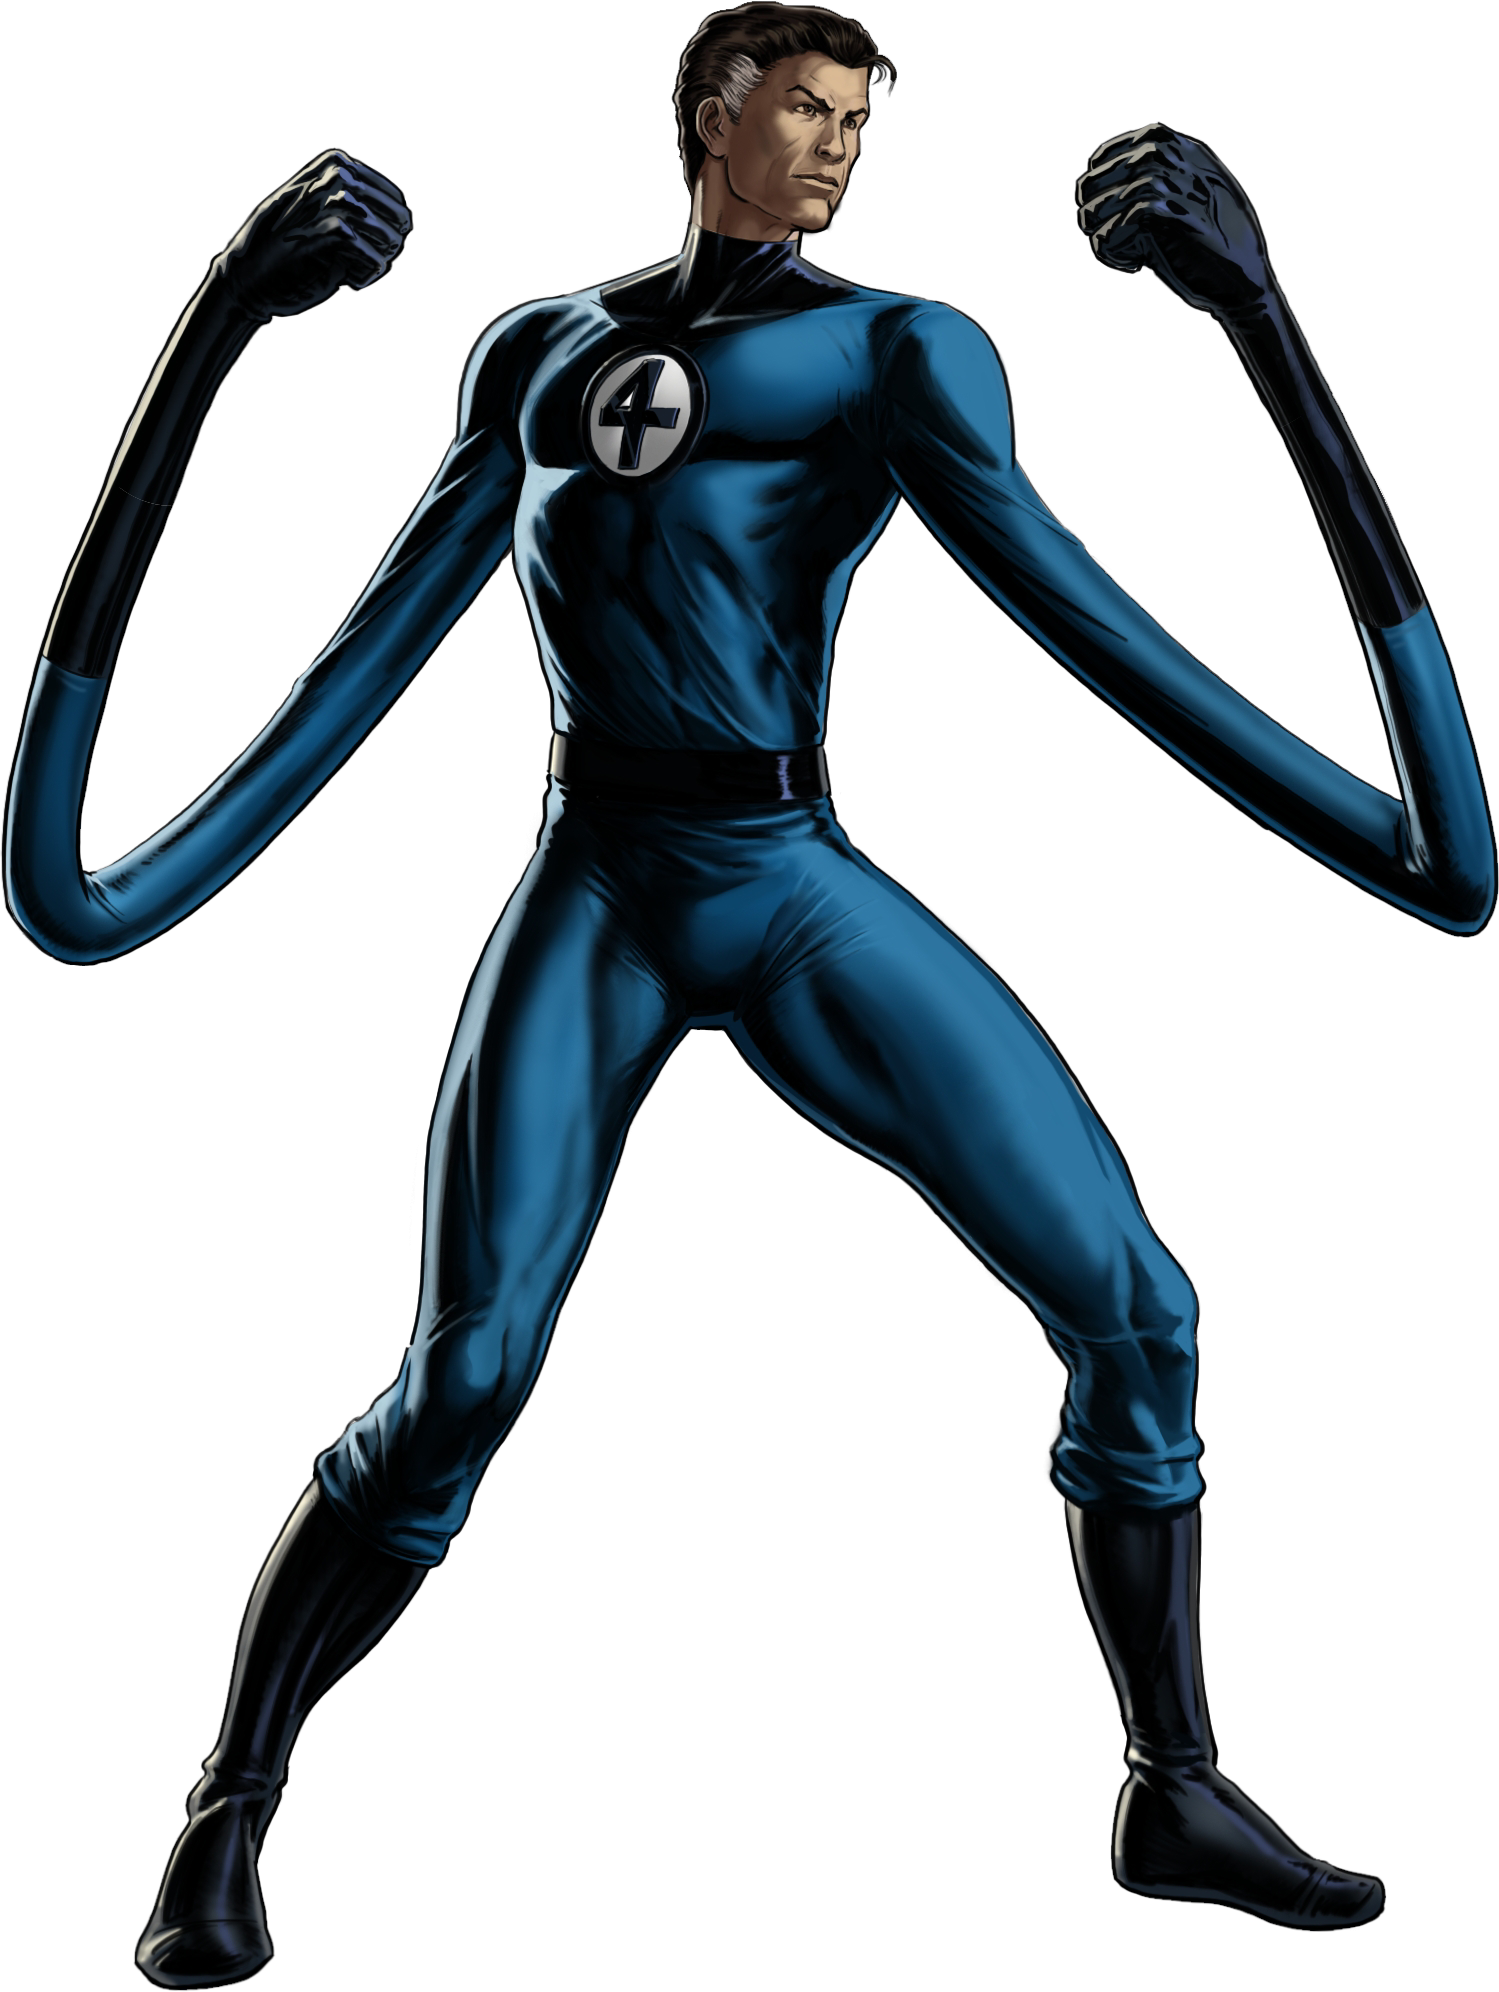 Image of Mr Fantastic Superhero